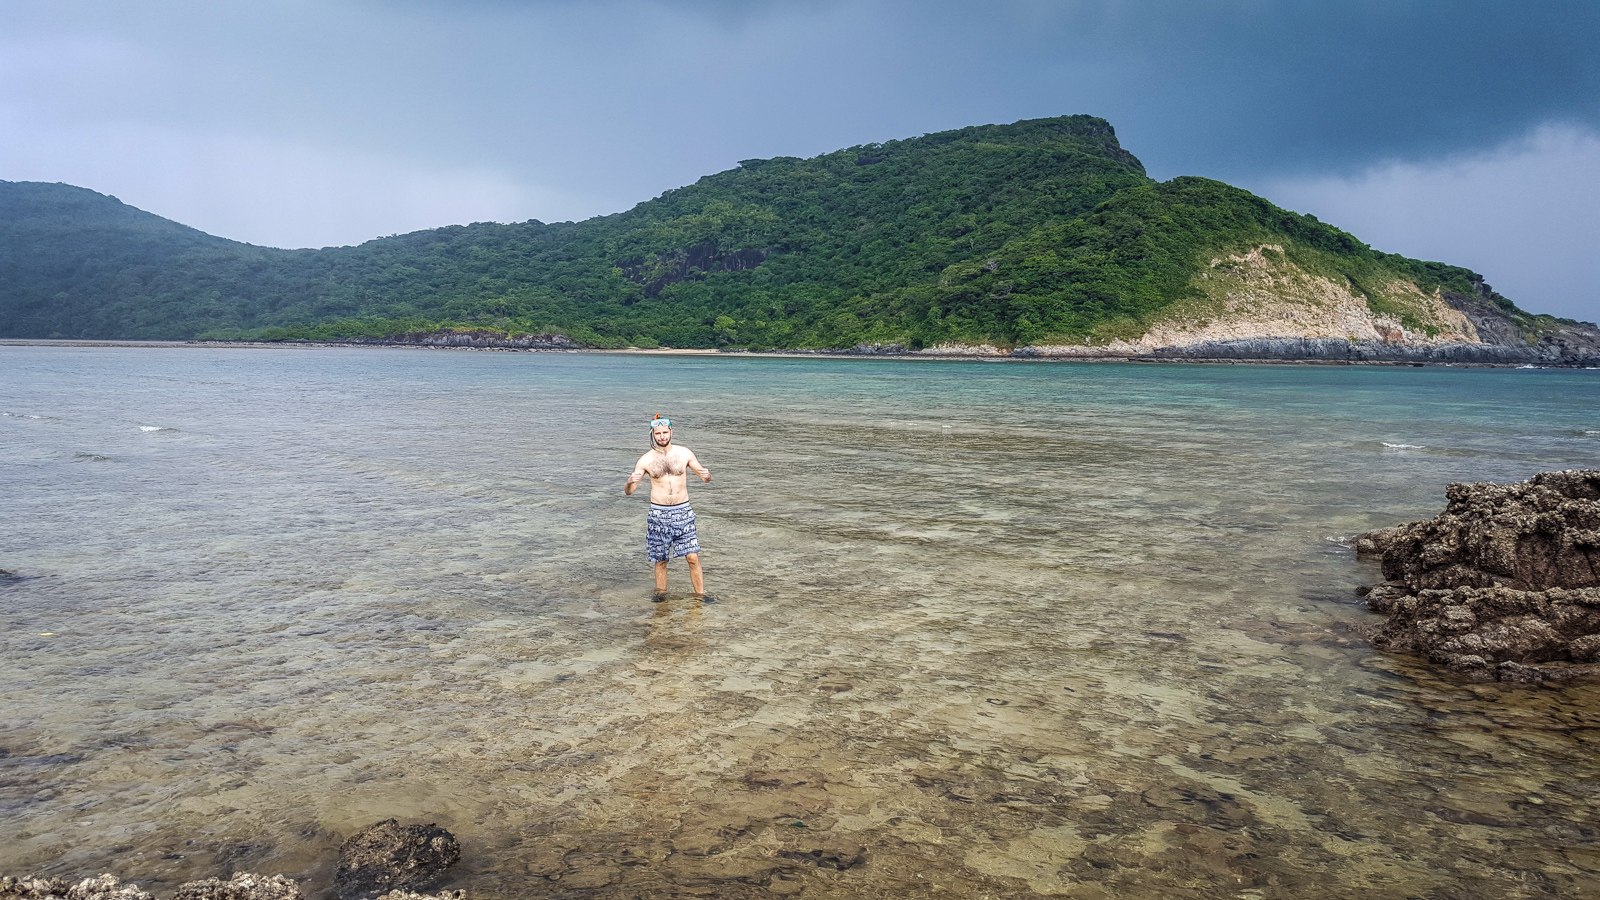 Snorkeling at Dam Tre Bay - Con Dao